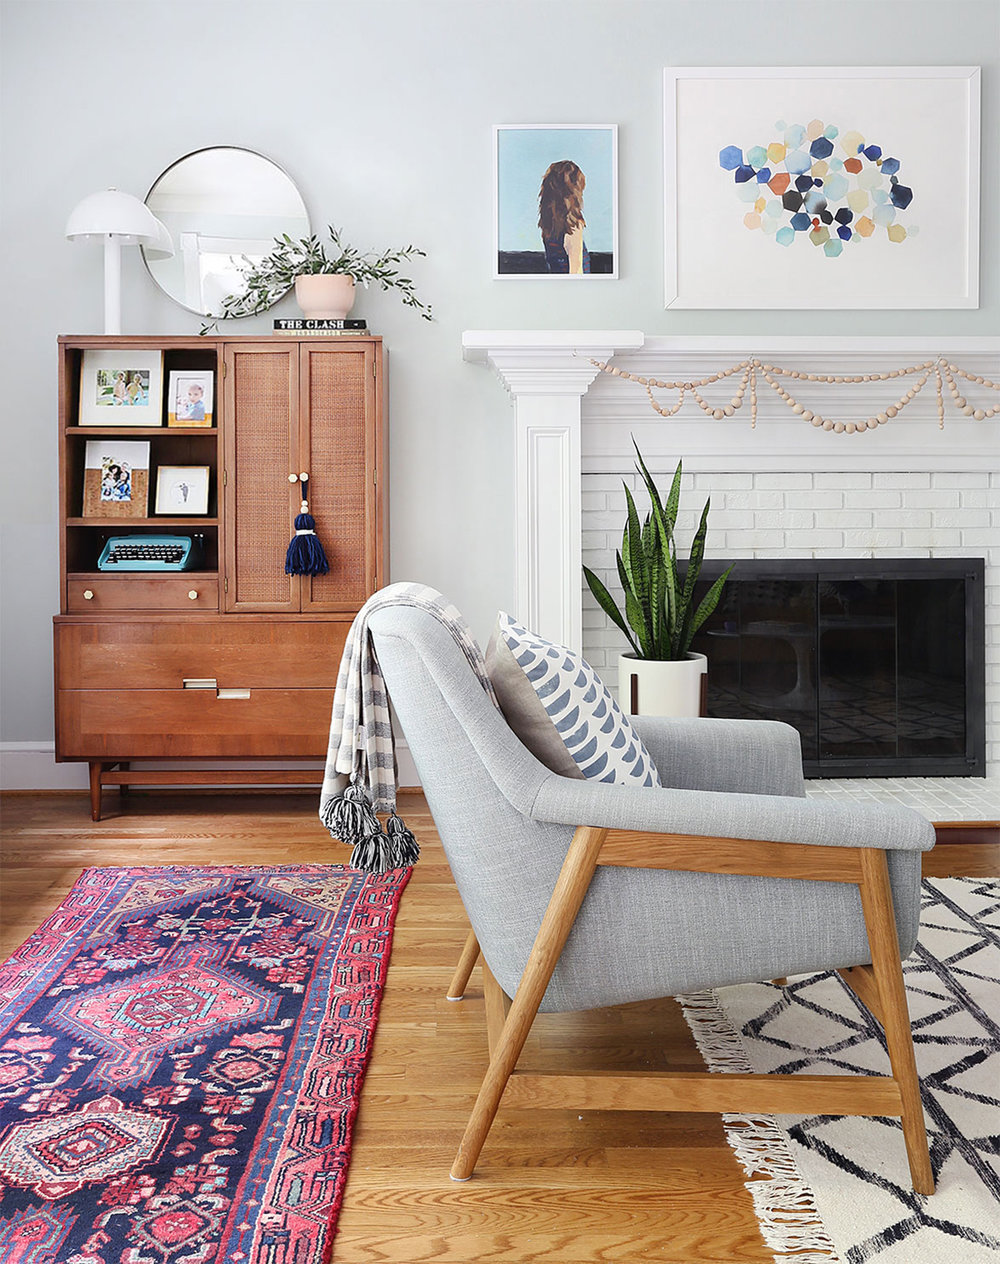 living-room-vintage-runner.jpg